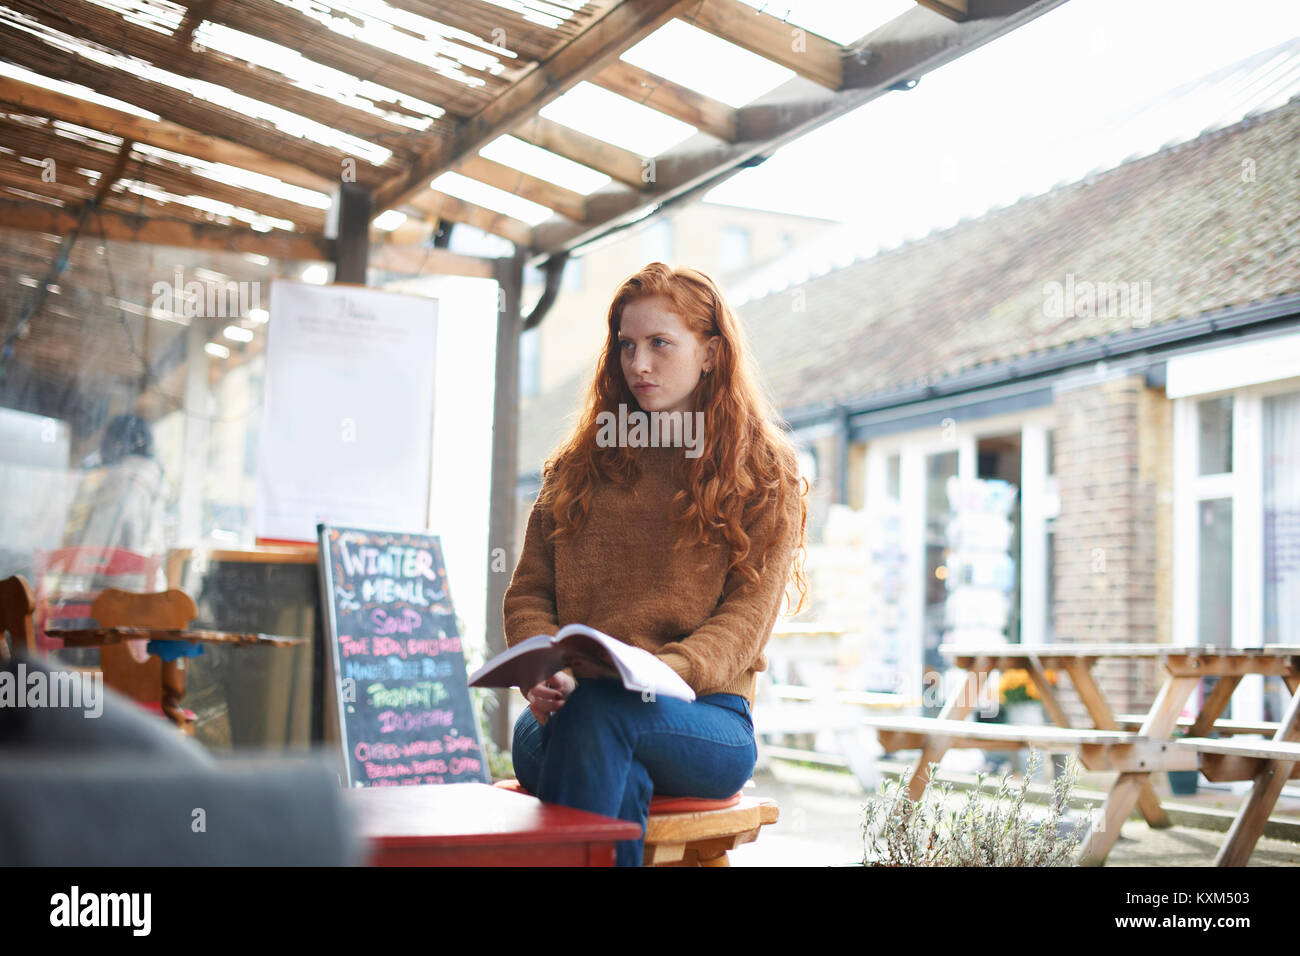 Woman at coffee shop holding notebook looking solemn - Stock Image